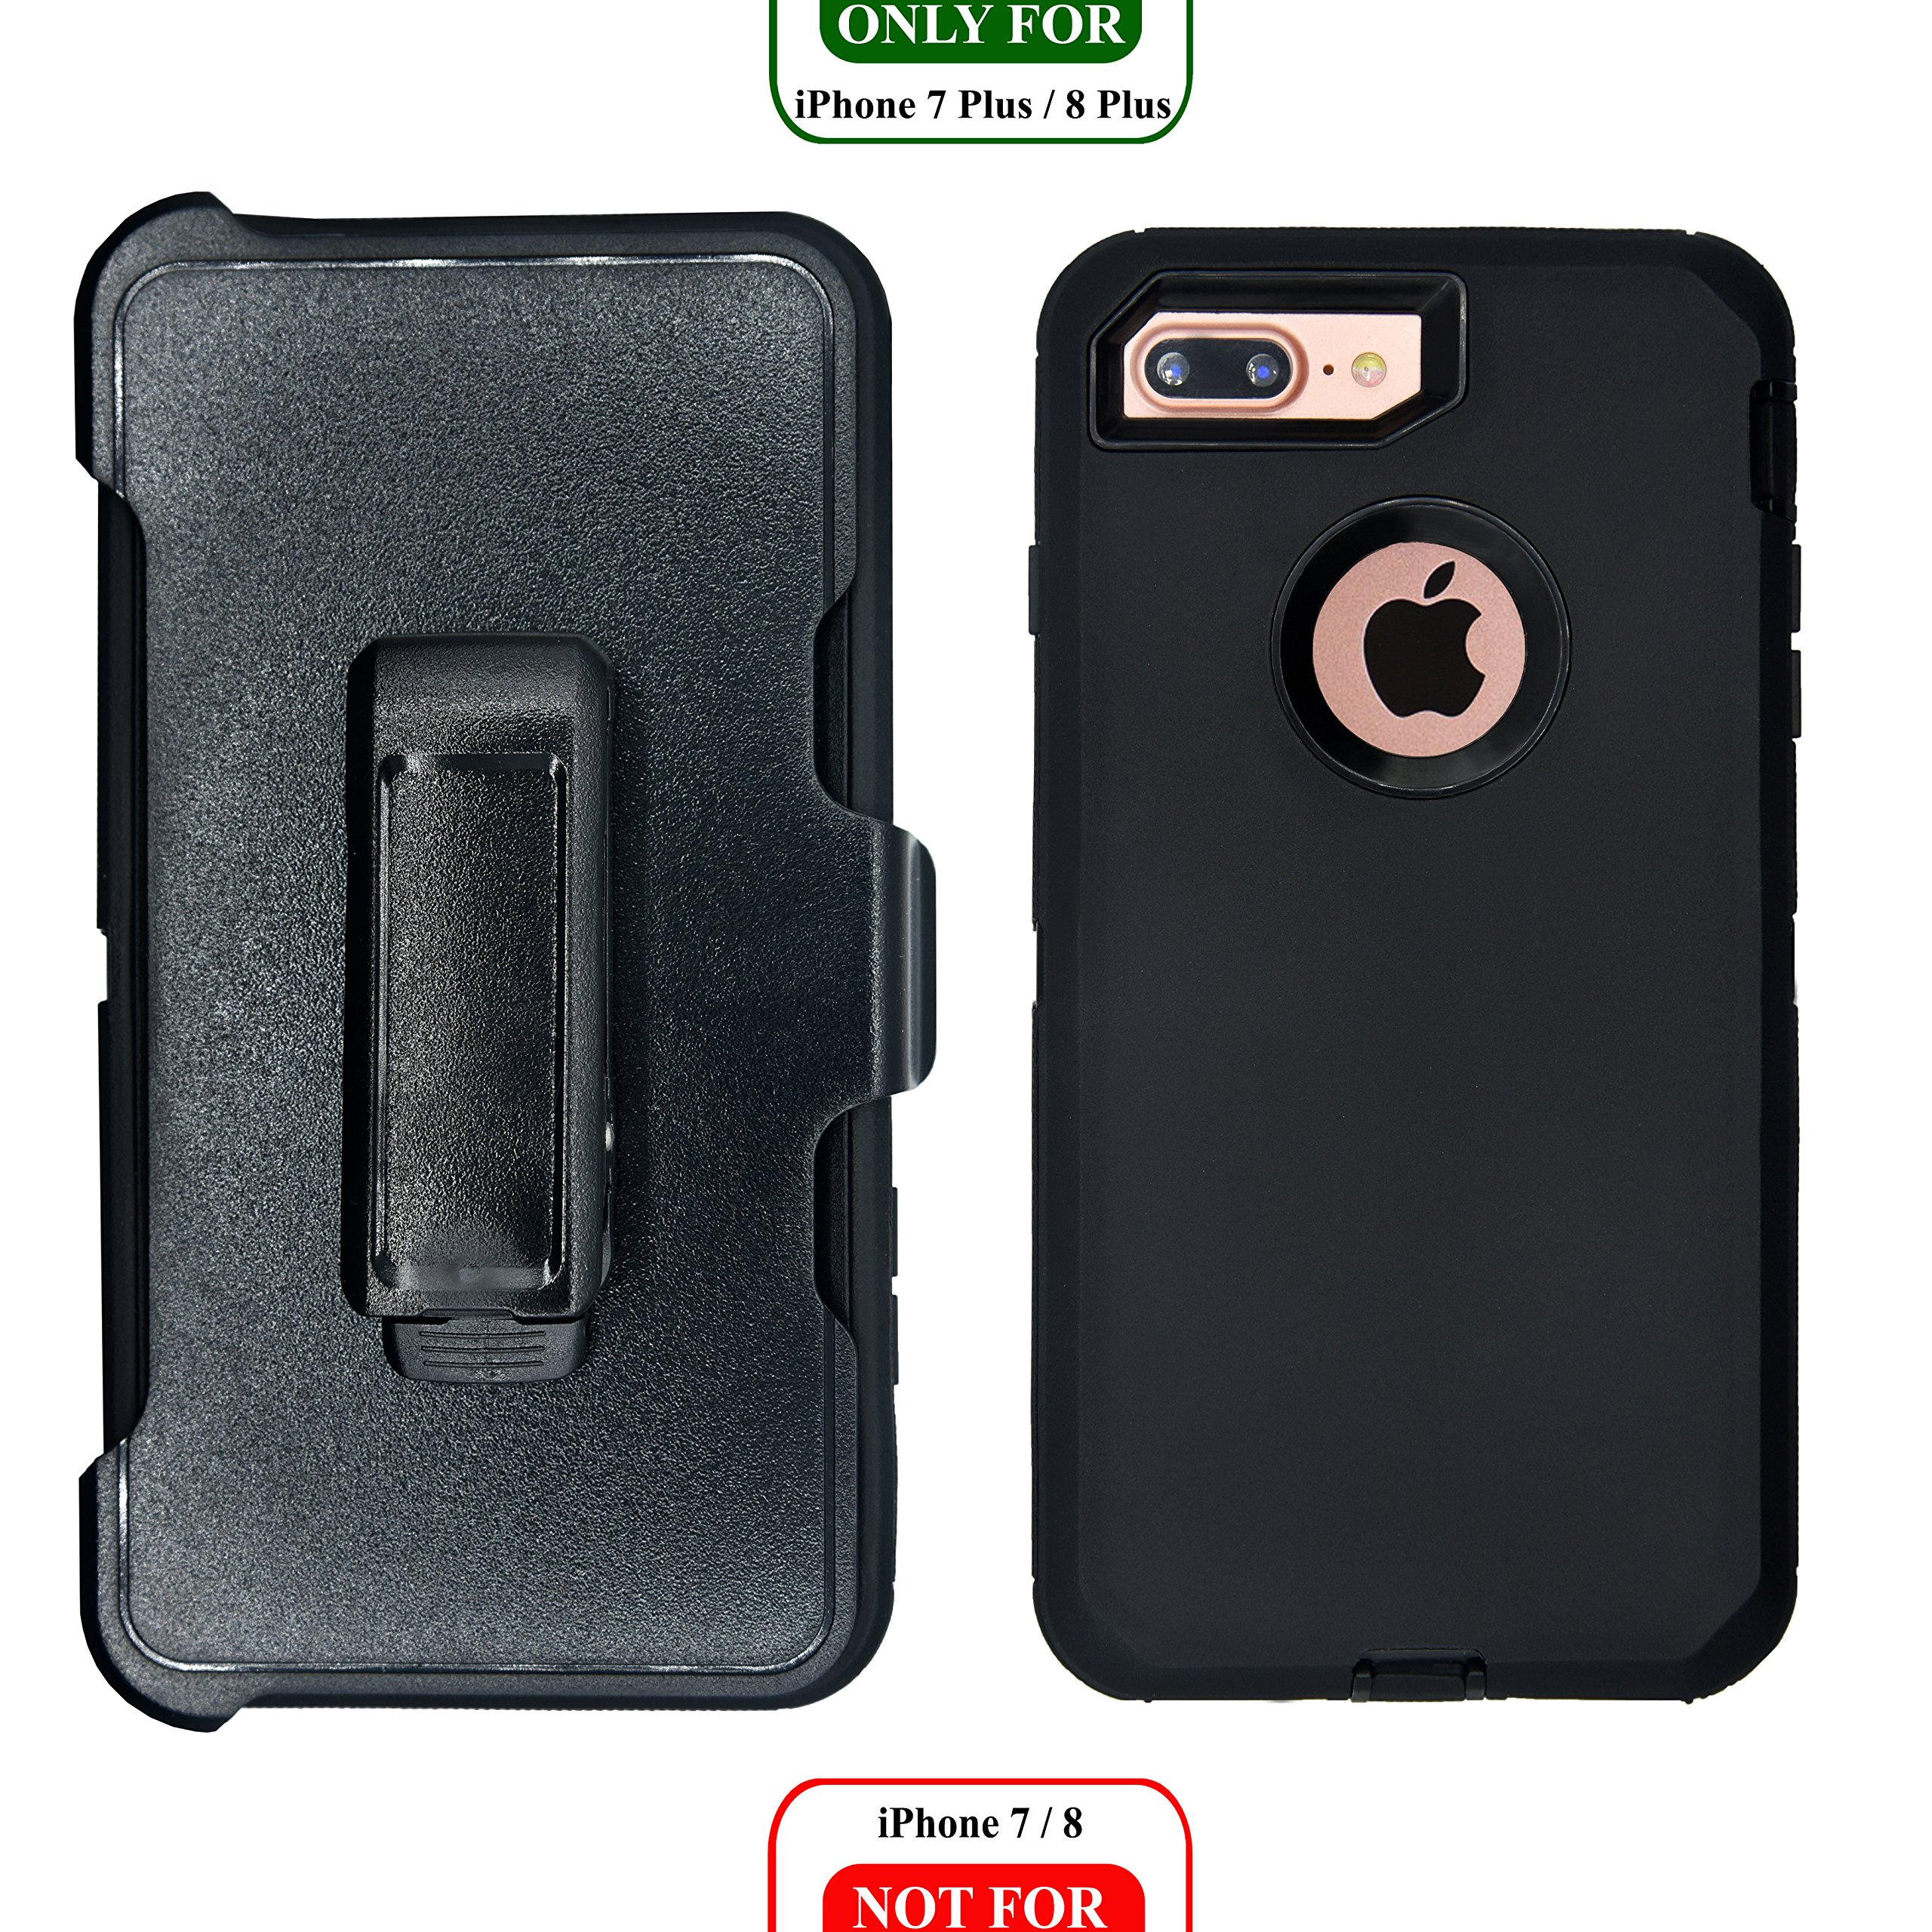 iPhone 7 Plus / 8 Plus Cover | 2-in-1 Screen Protector & Holster Case | Full Body, Military Grade Edge-to-Edge Protection with carrying belt clip Black / Black by AlphaCell (Image #2)